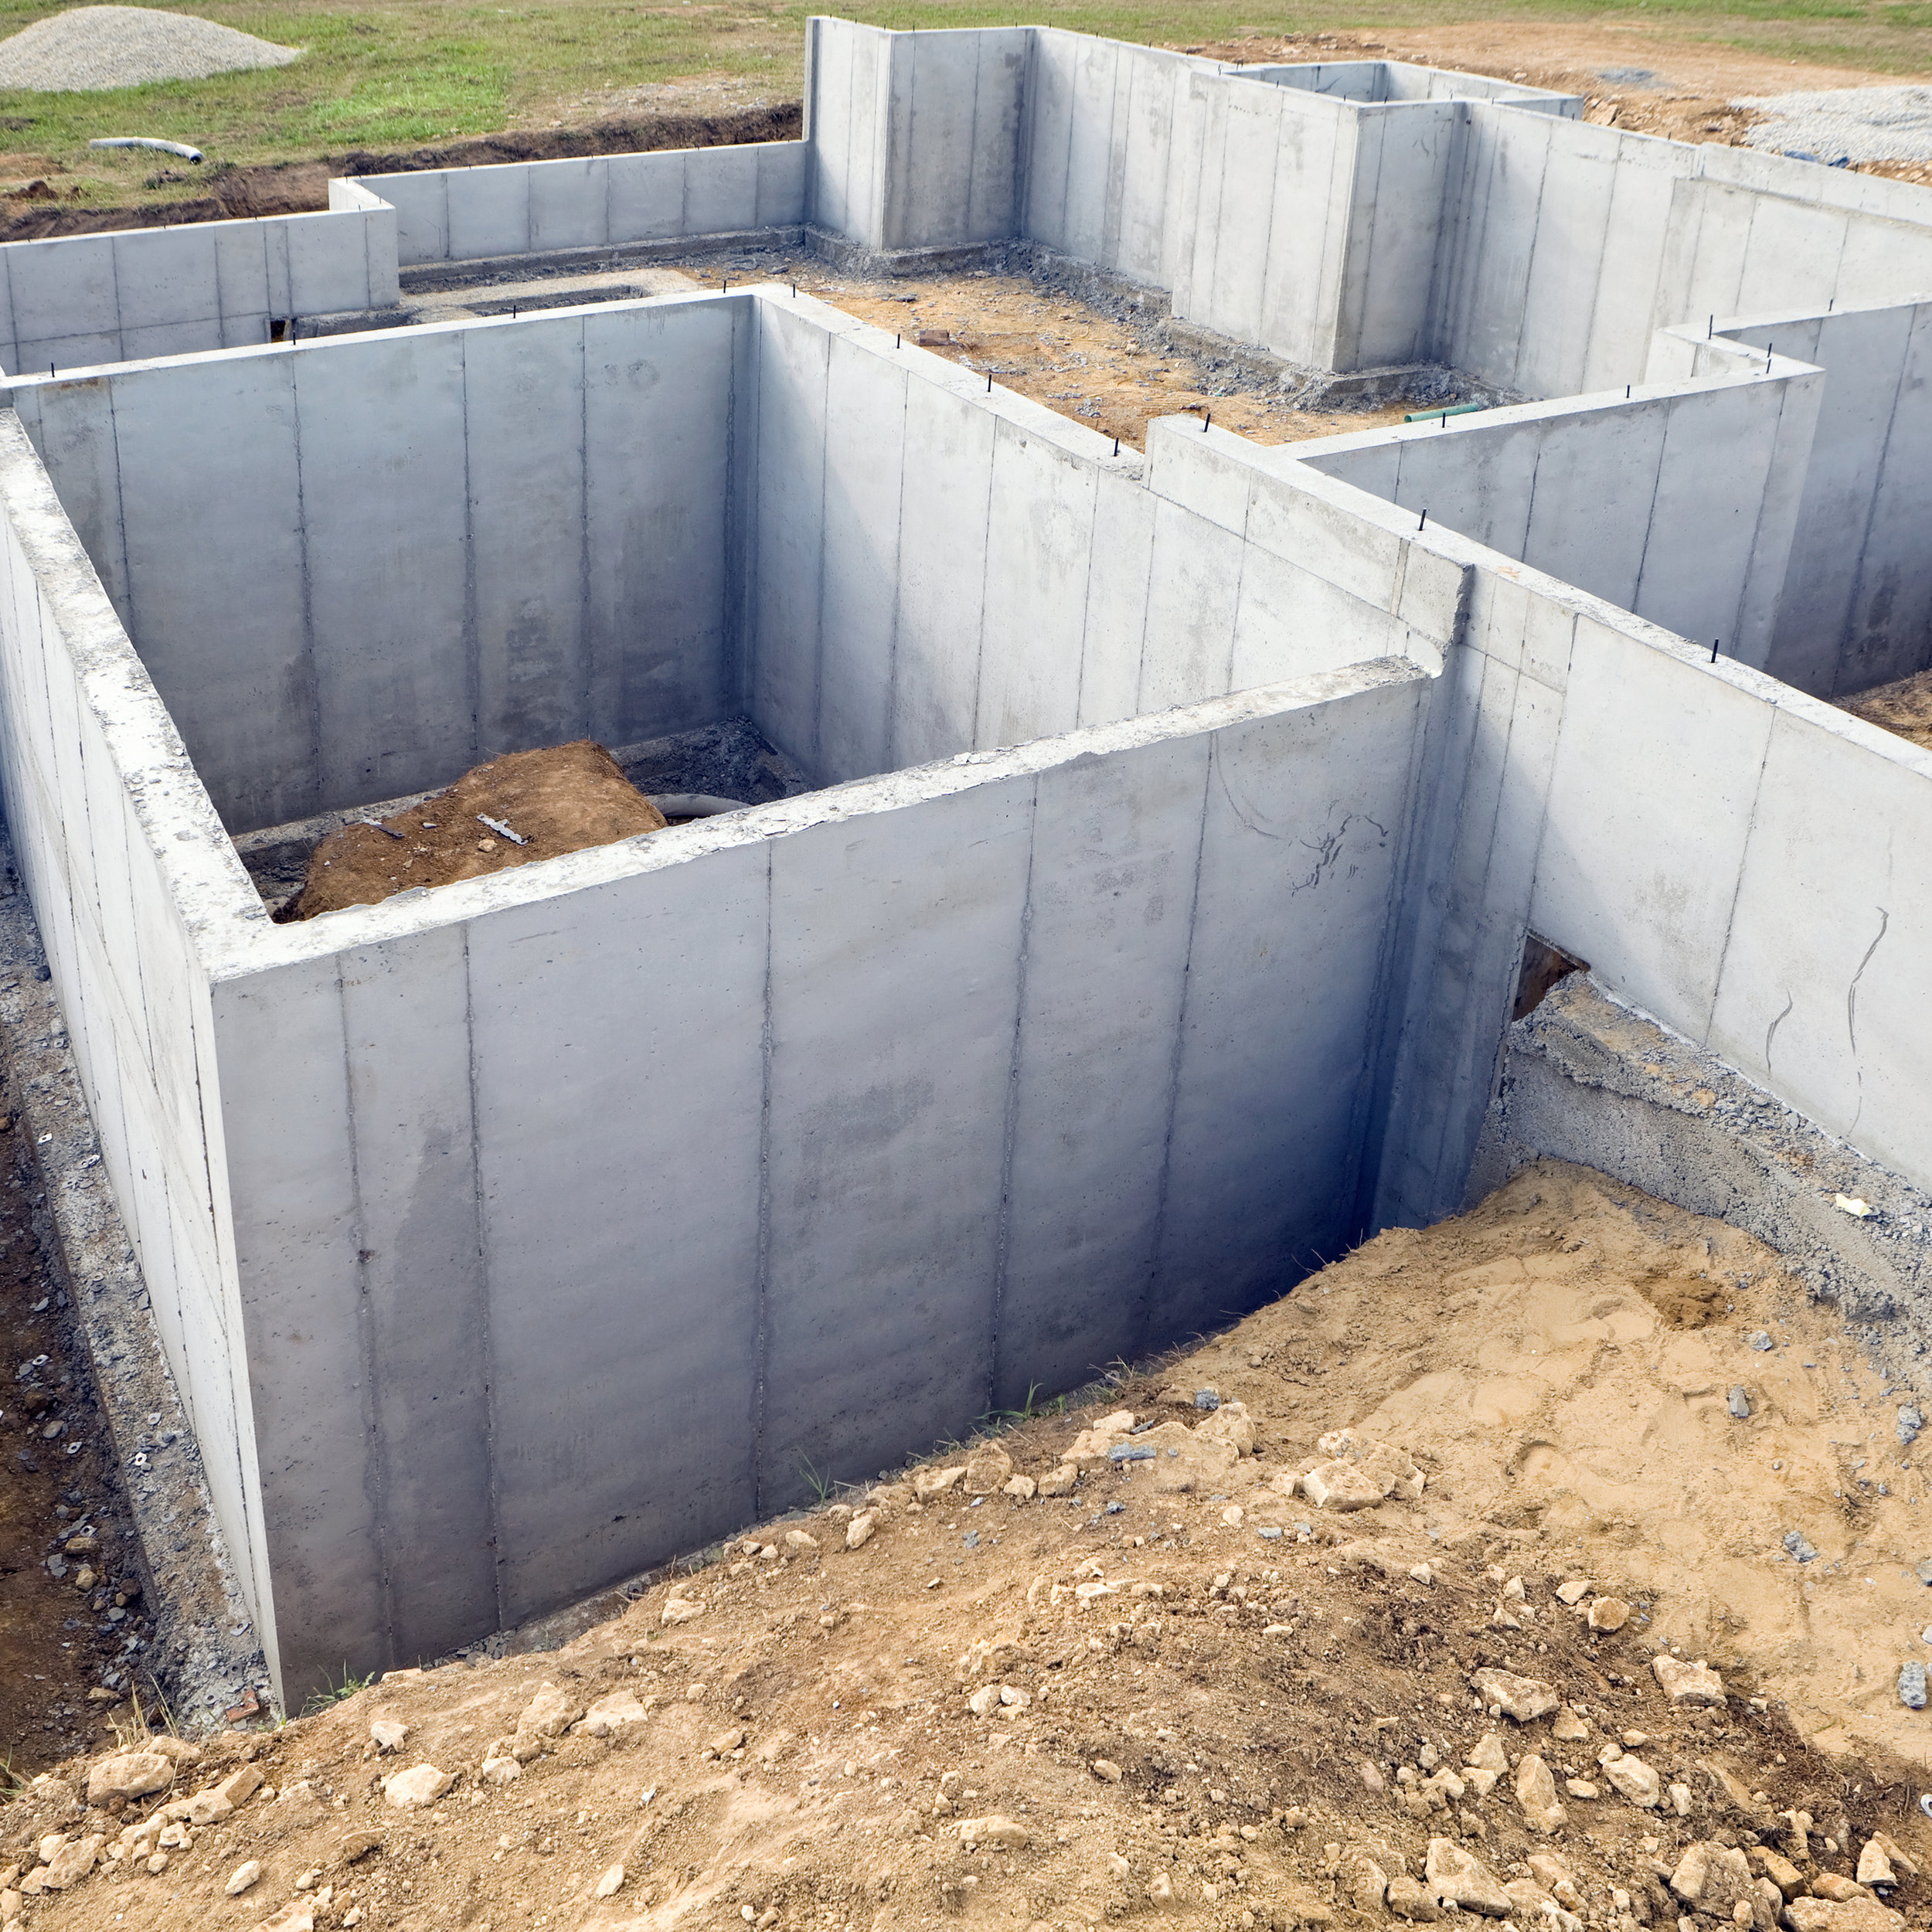 Foundation   We know that without a proper foundation, even a dream home can run into problems down the road. At GBI, we eliminate any structural issues by getting it right the first time: our foundation work will always exceed industry standards.    LEARN MORE